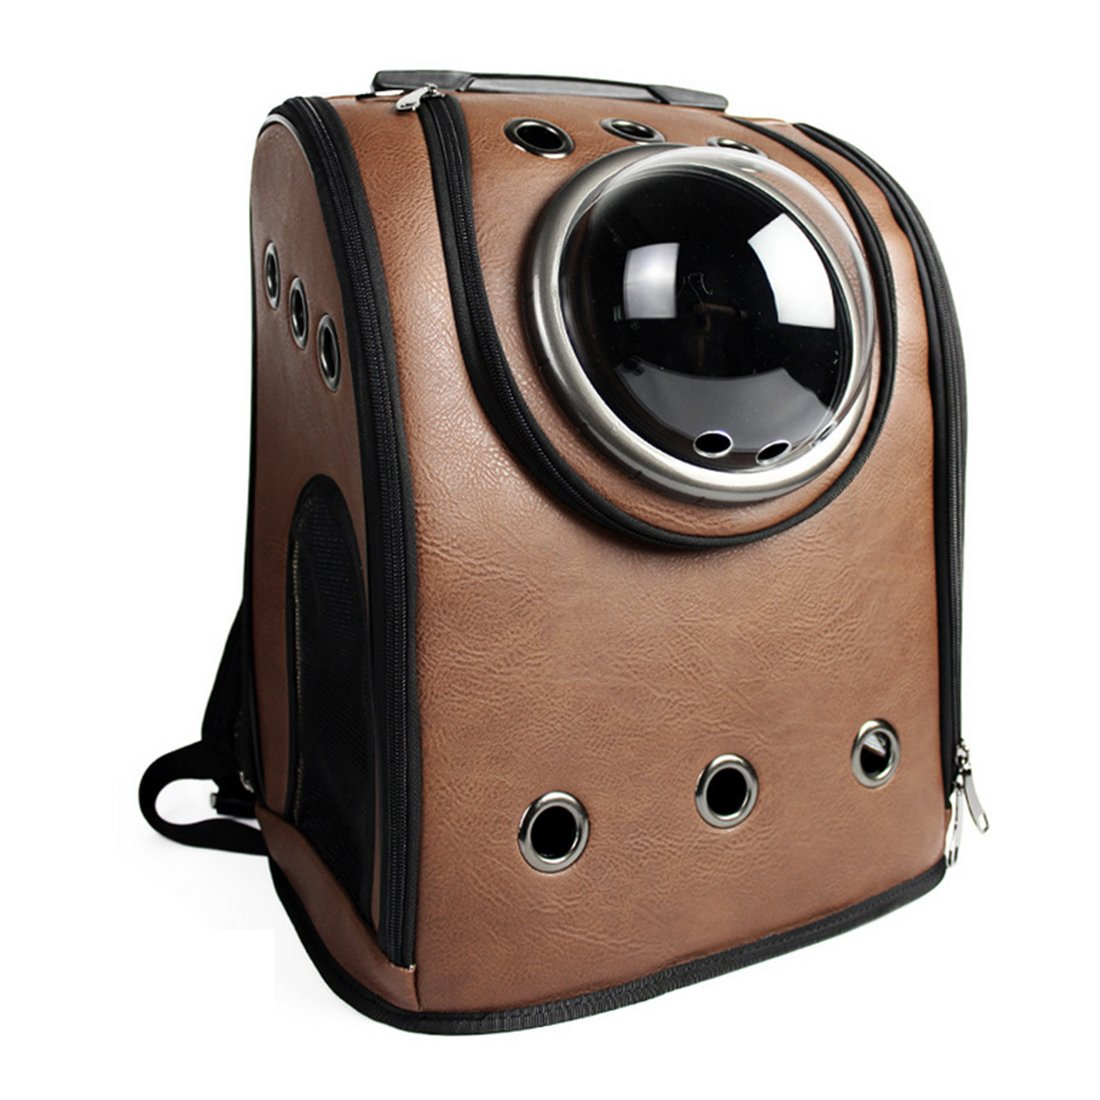 Petforu Pet Carrier Backpack, Space Capsule Dog Cat Small Animals Travel Bag Coffee